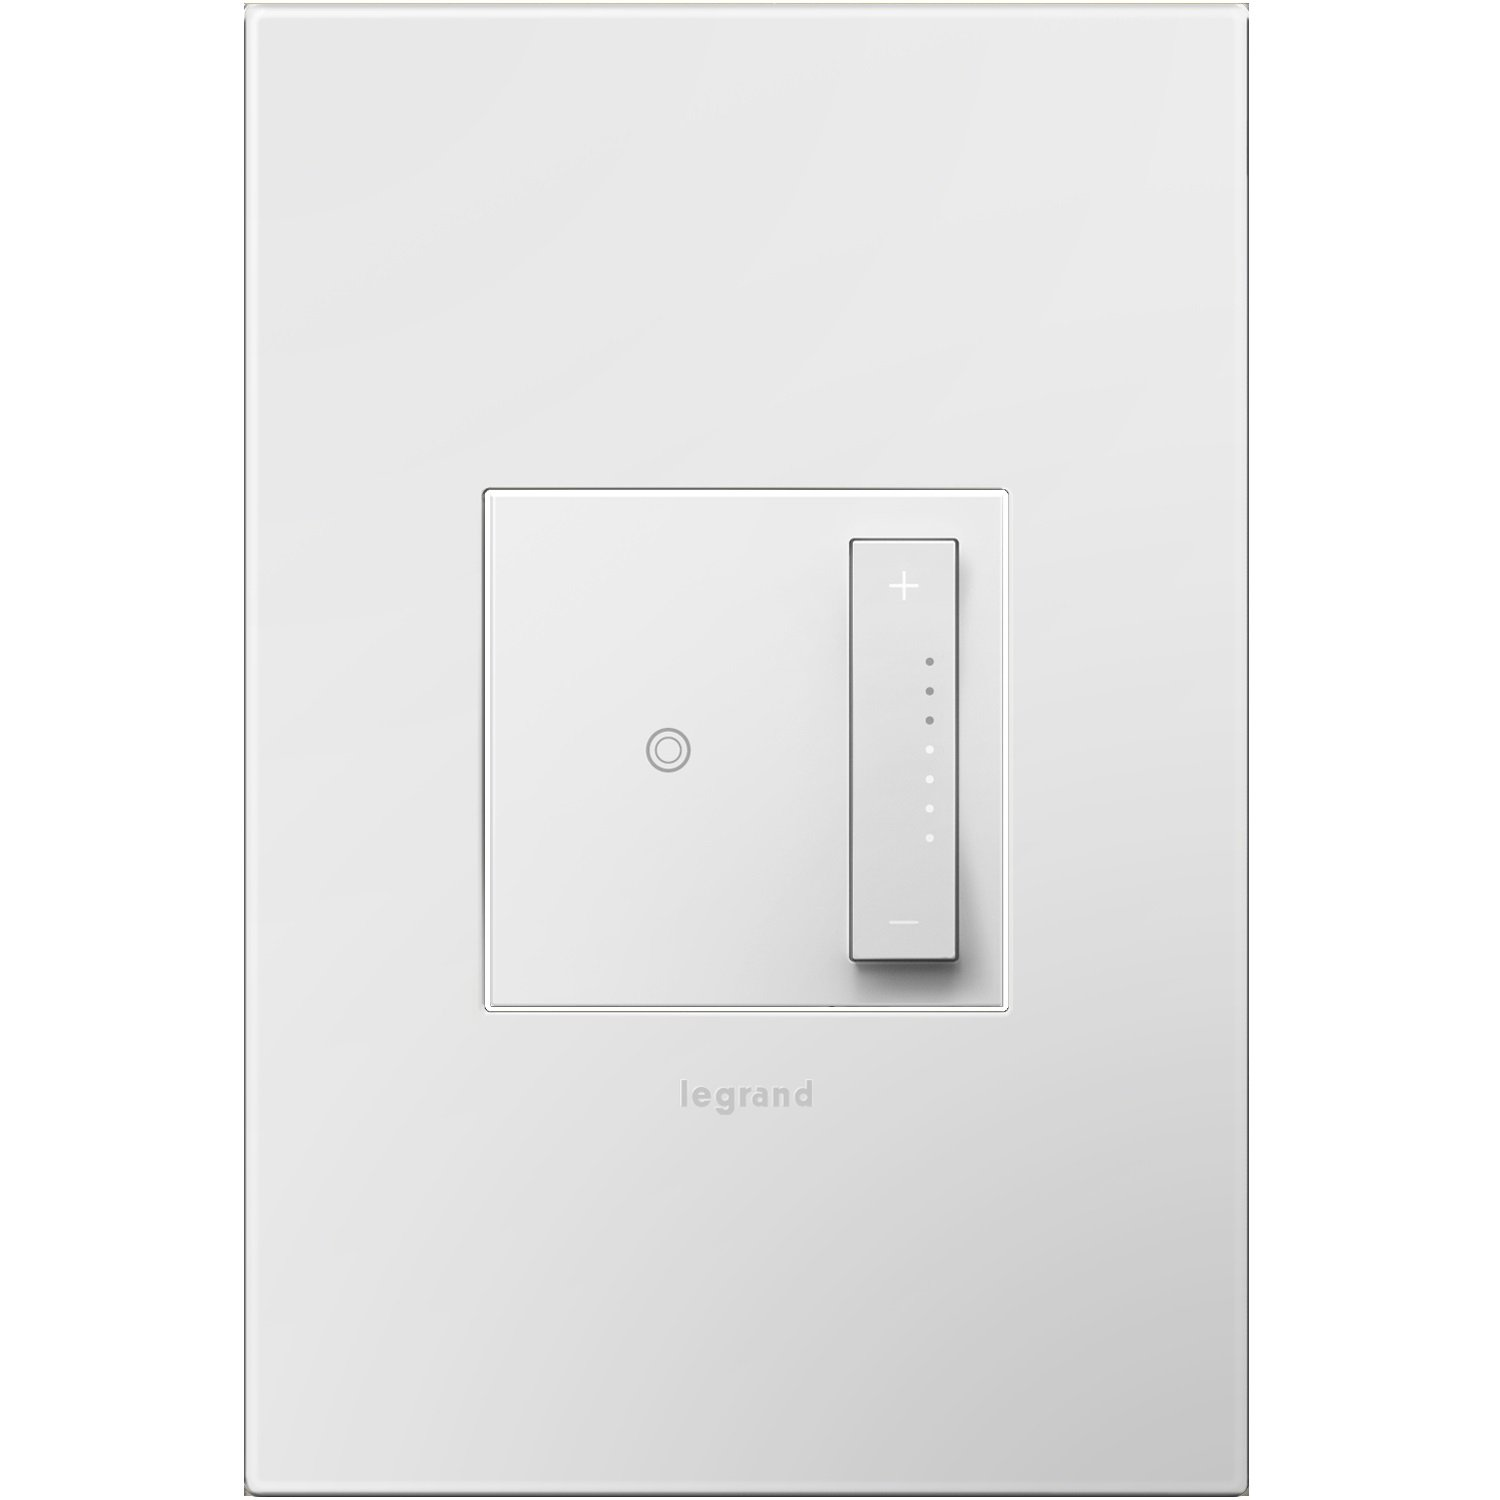 Legrand Adorne sofTap Tru-Universal Dimmer Switch, 700W (Incandescent, Halogen, MLV, Fluorescent, ELV, CFL, LED), White Finish, Wall Plate Included, ADTP703TUW4